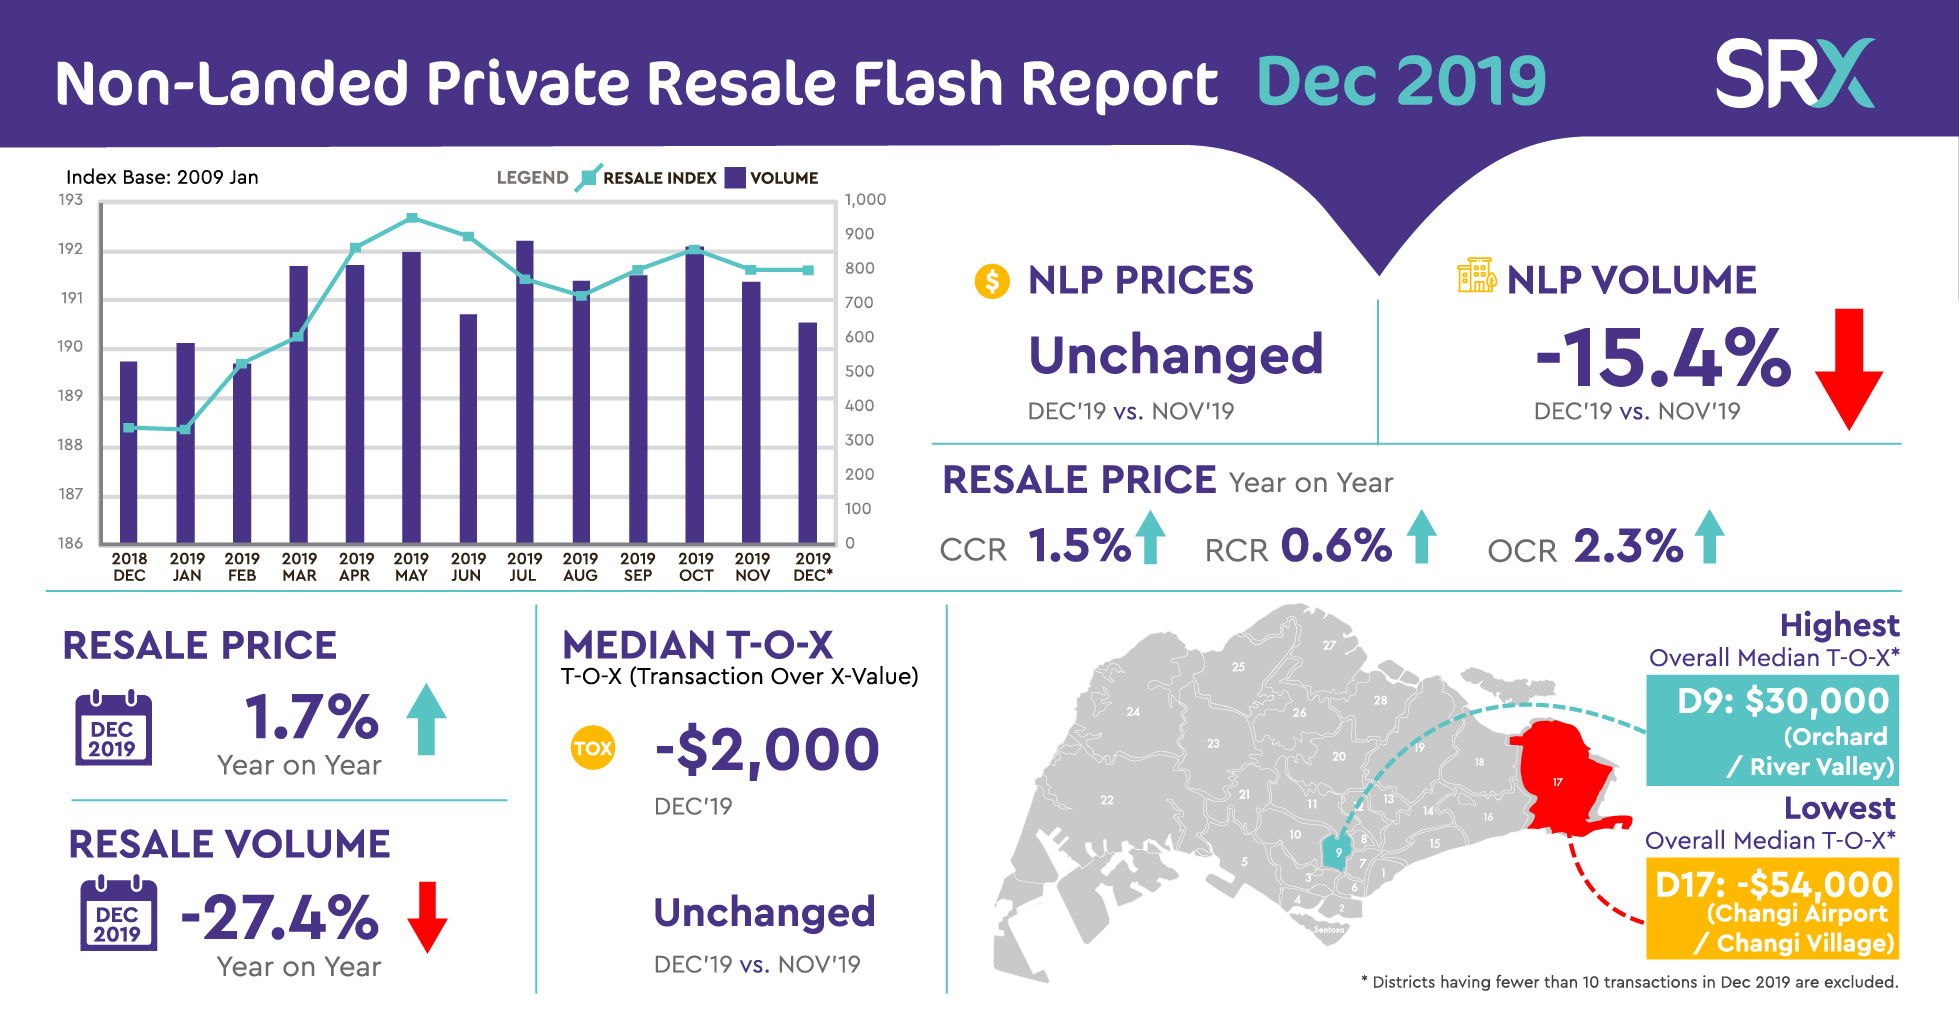 2019 Saw NLP Resale Prices 1.7% Higher, But Volumes 27.4% Lower Compared To 2018.  December 2019 Resale Prices Flat; Volumes Eased vs November 2019